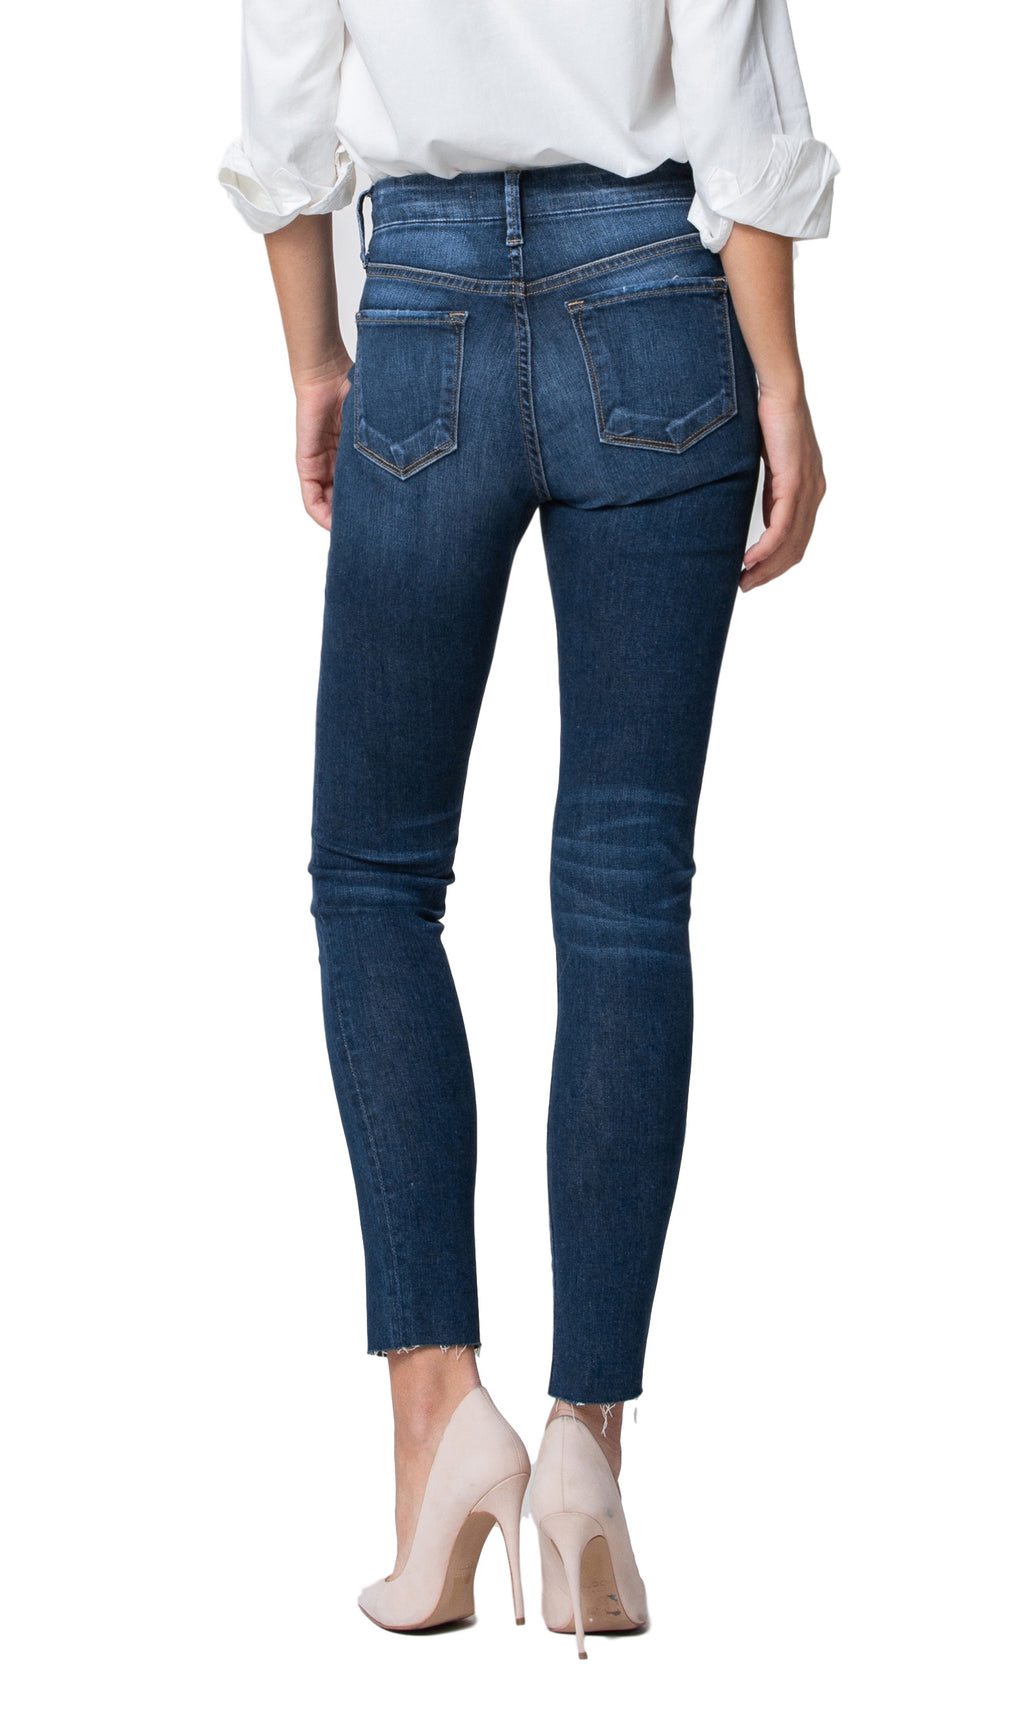 Flying Monkey Jeans  Collection: January 2019  Style Name: Varnish  Color: Medium Dark Wash  Cut: Ankle Skinny  Rise: Mid Rise  Material: 79%COTTON, 19% TENCEL, 2% LYCRA  Description: Frayed Hem Ankle Skinny   Fly: Zipper   Style #: Y2661  Contact us for any additional measurements or sizing.  True to size per manufacture standard